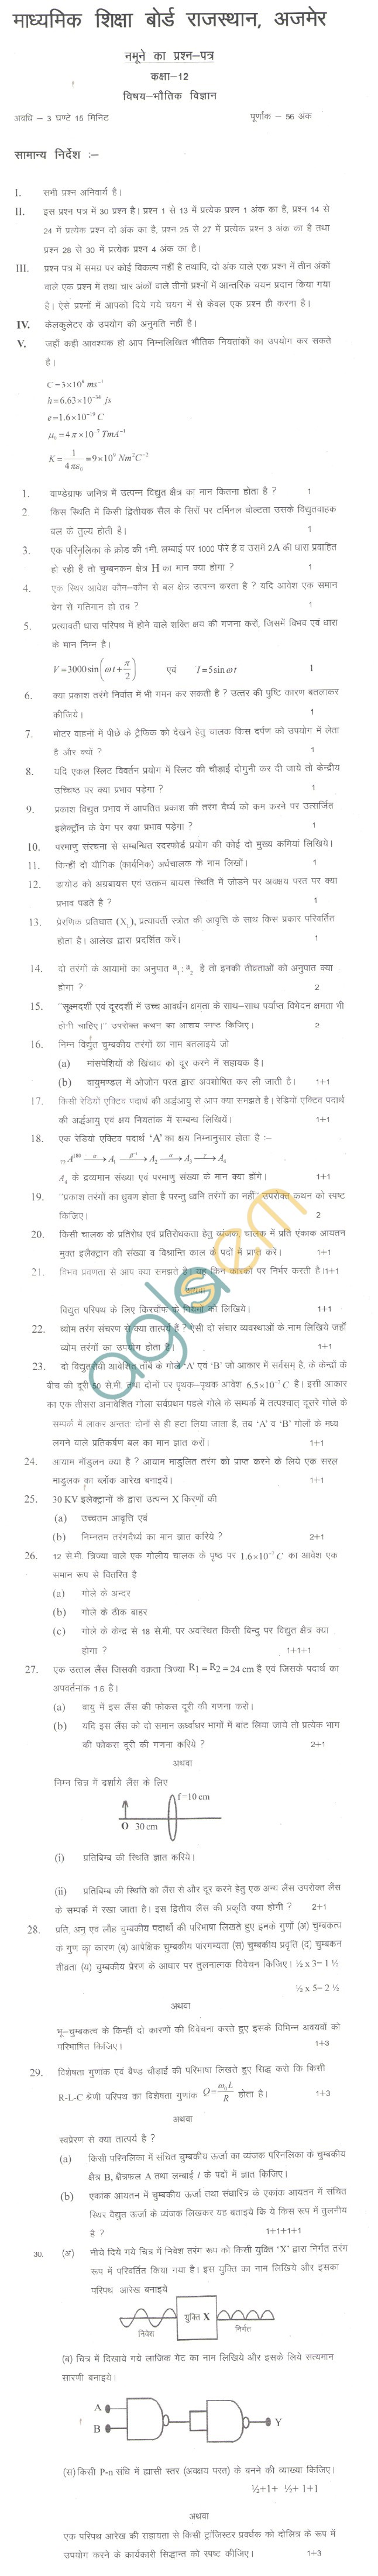 Rajasthan Board Class 12 Physics Model Question Paper